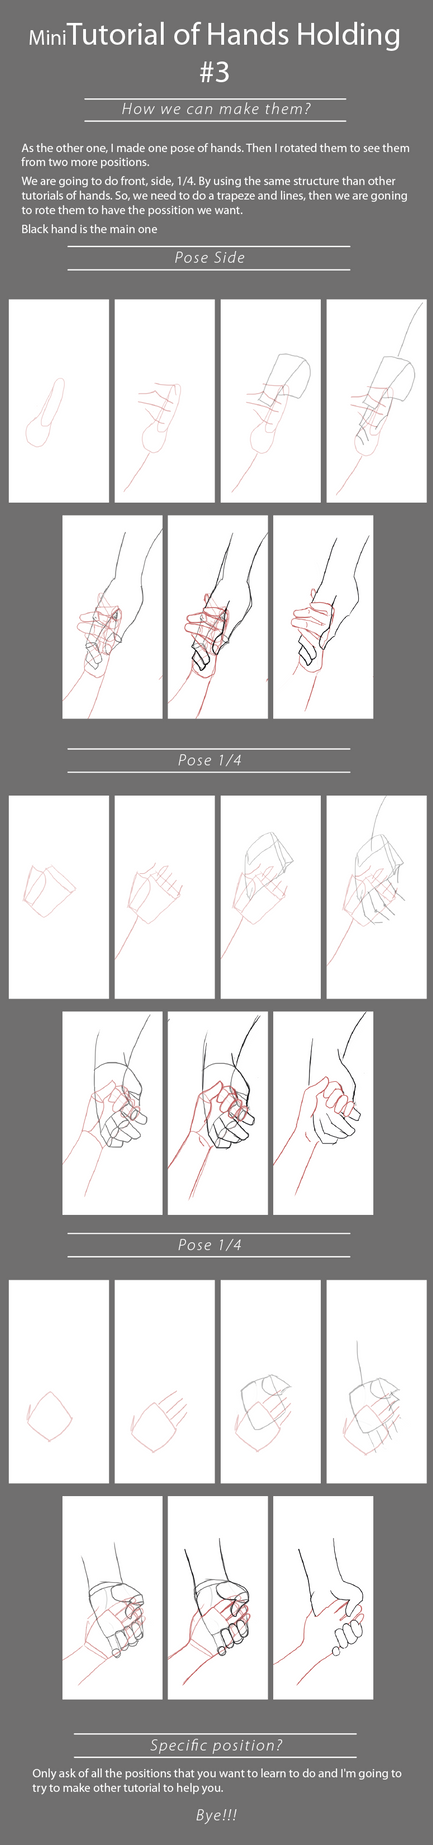 Mini Tutorial Hands Holding 3 by GonzaU